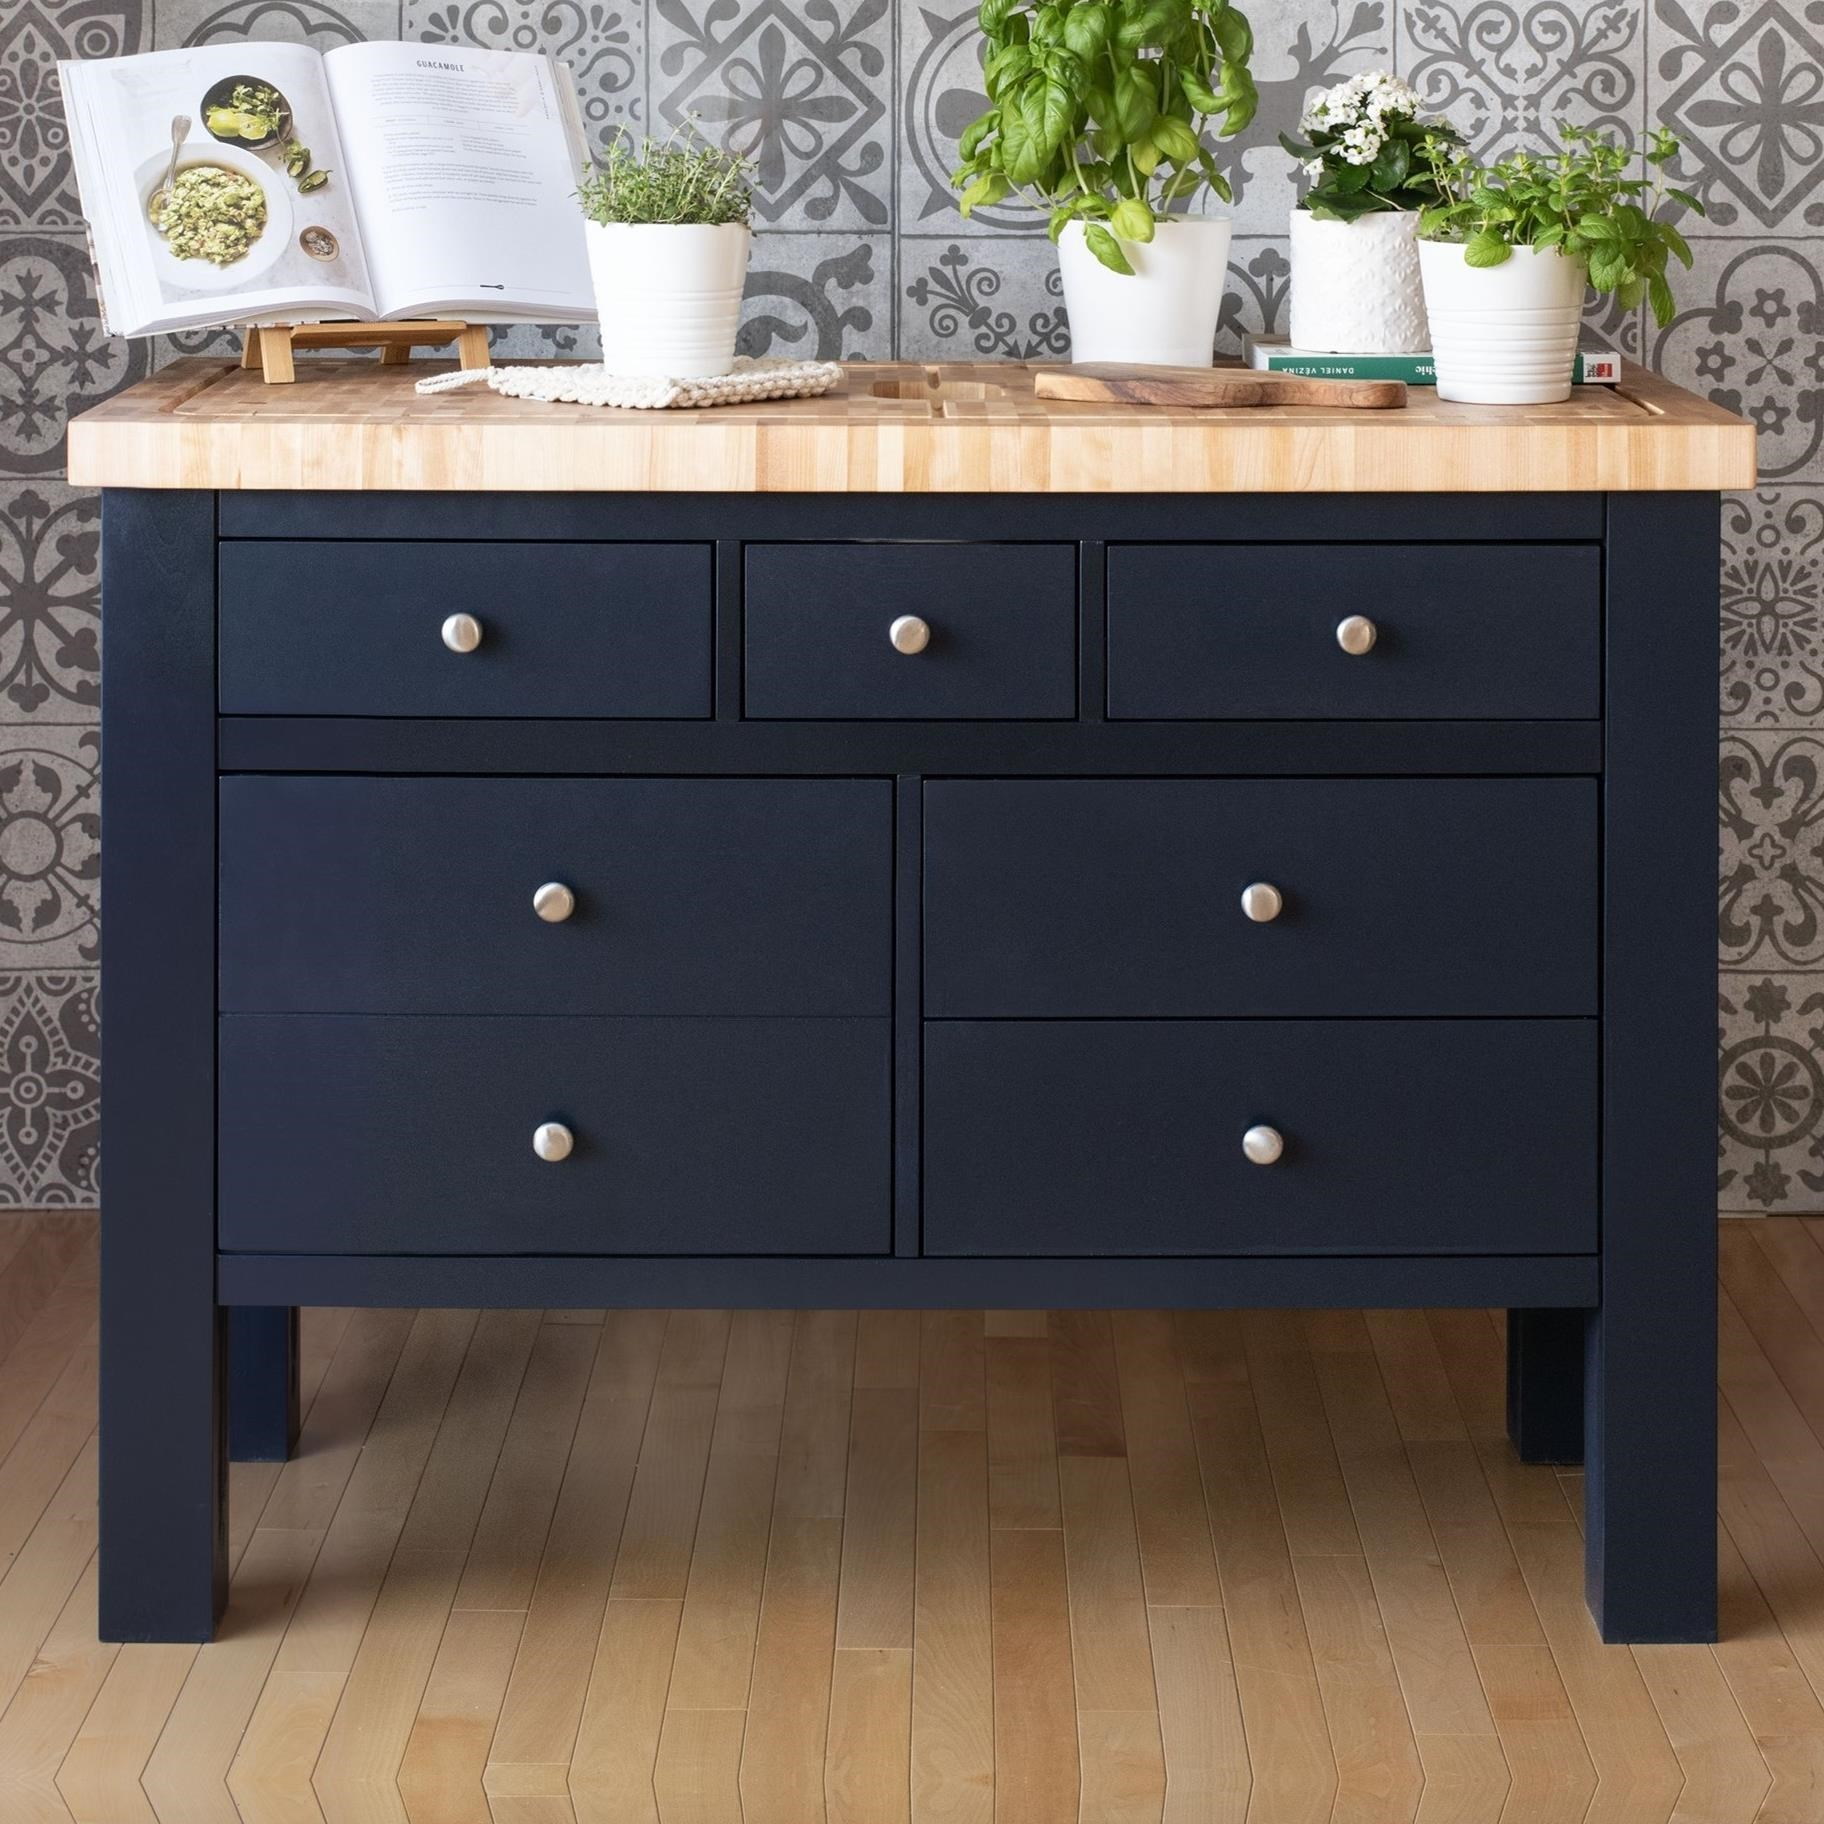 Customizable Kitchen Island with Butcher Block Top